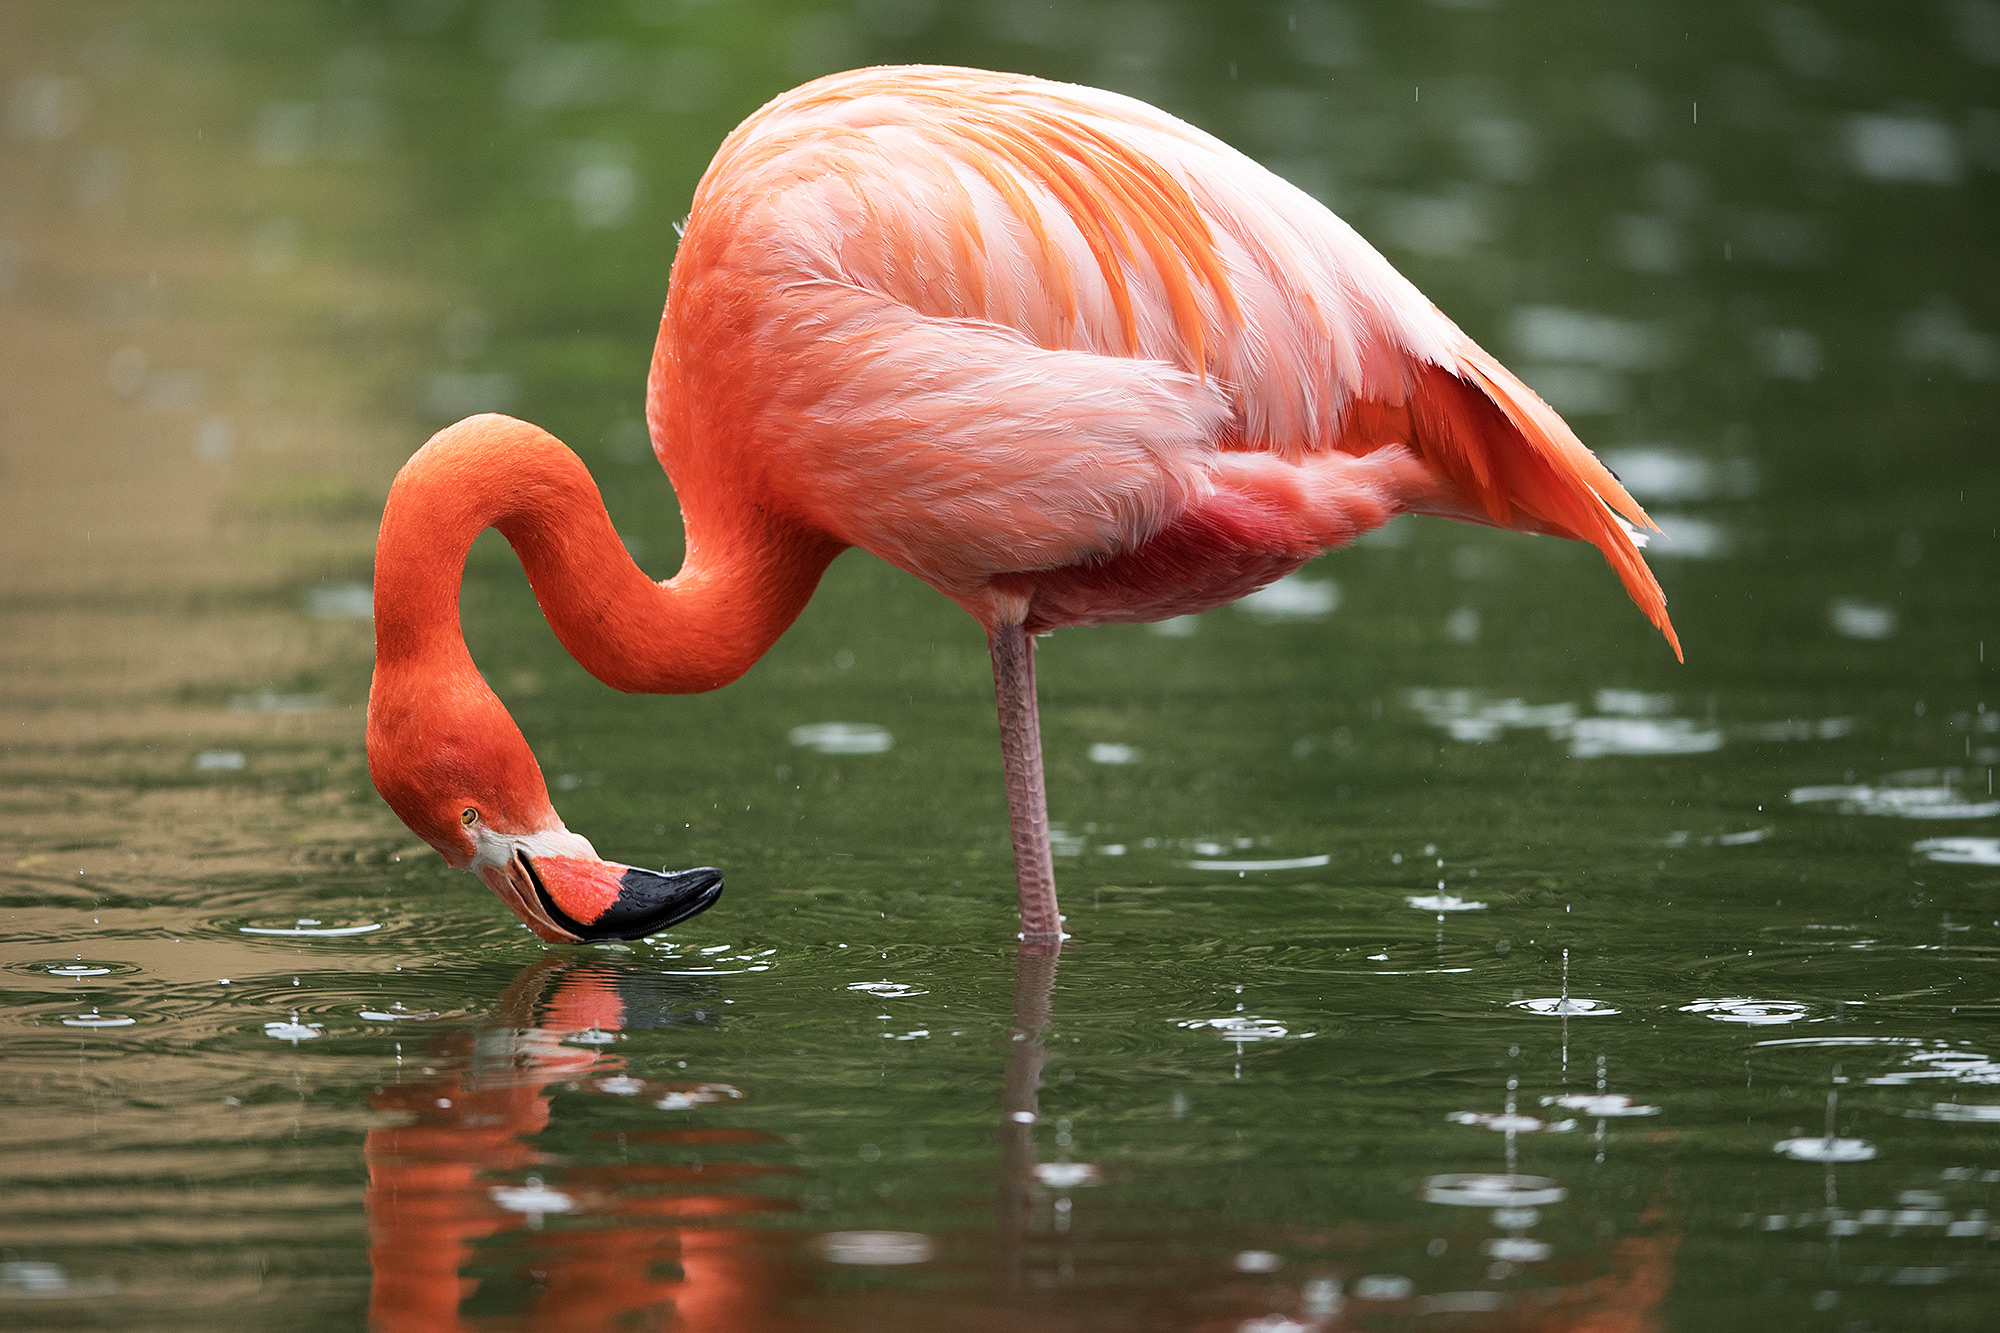 A Flamingo at an Illinois Zoo Had to Be Put Down After Child Threw a Rock at the Animal